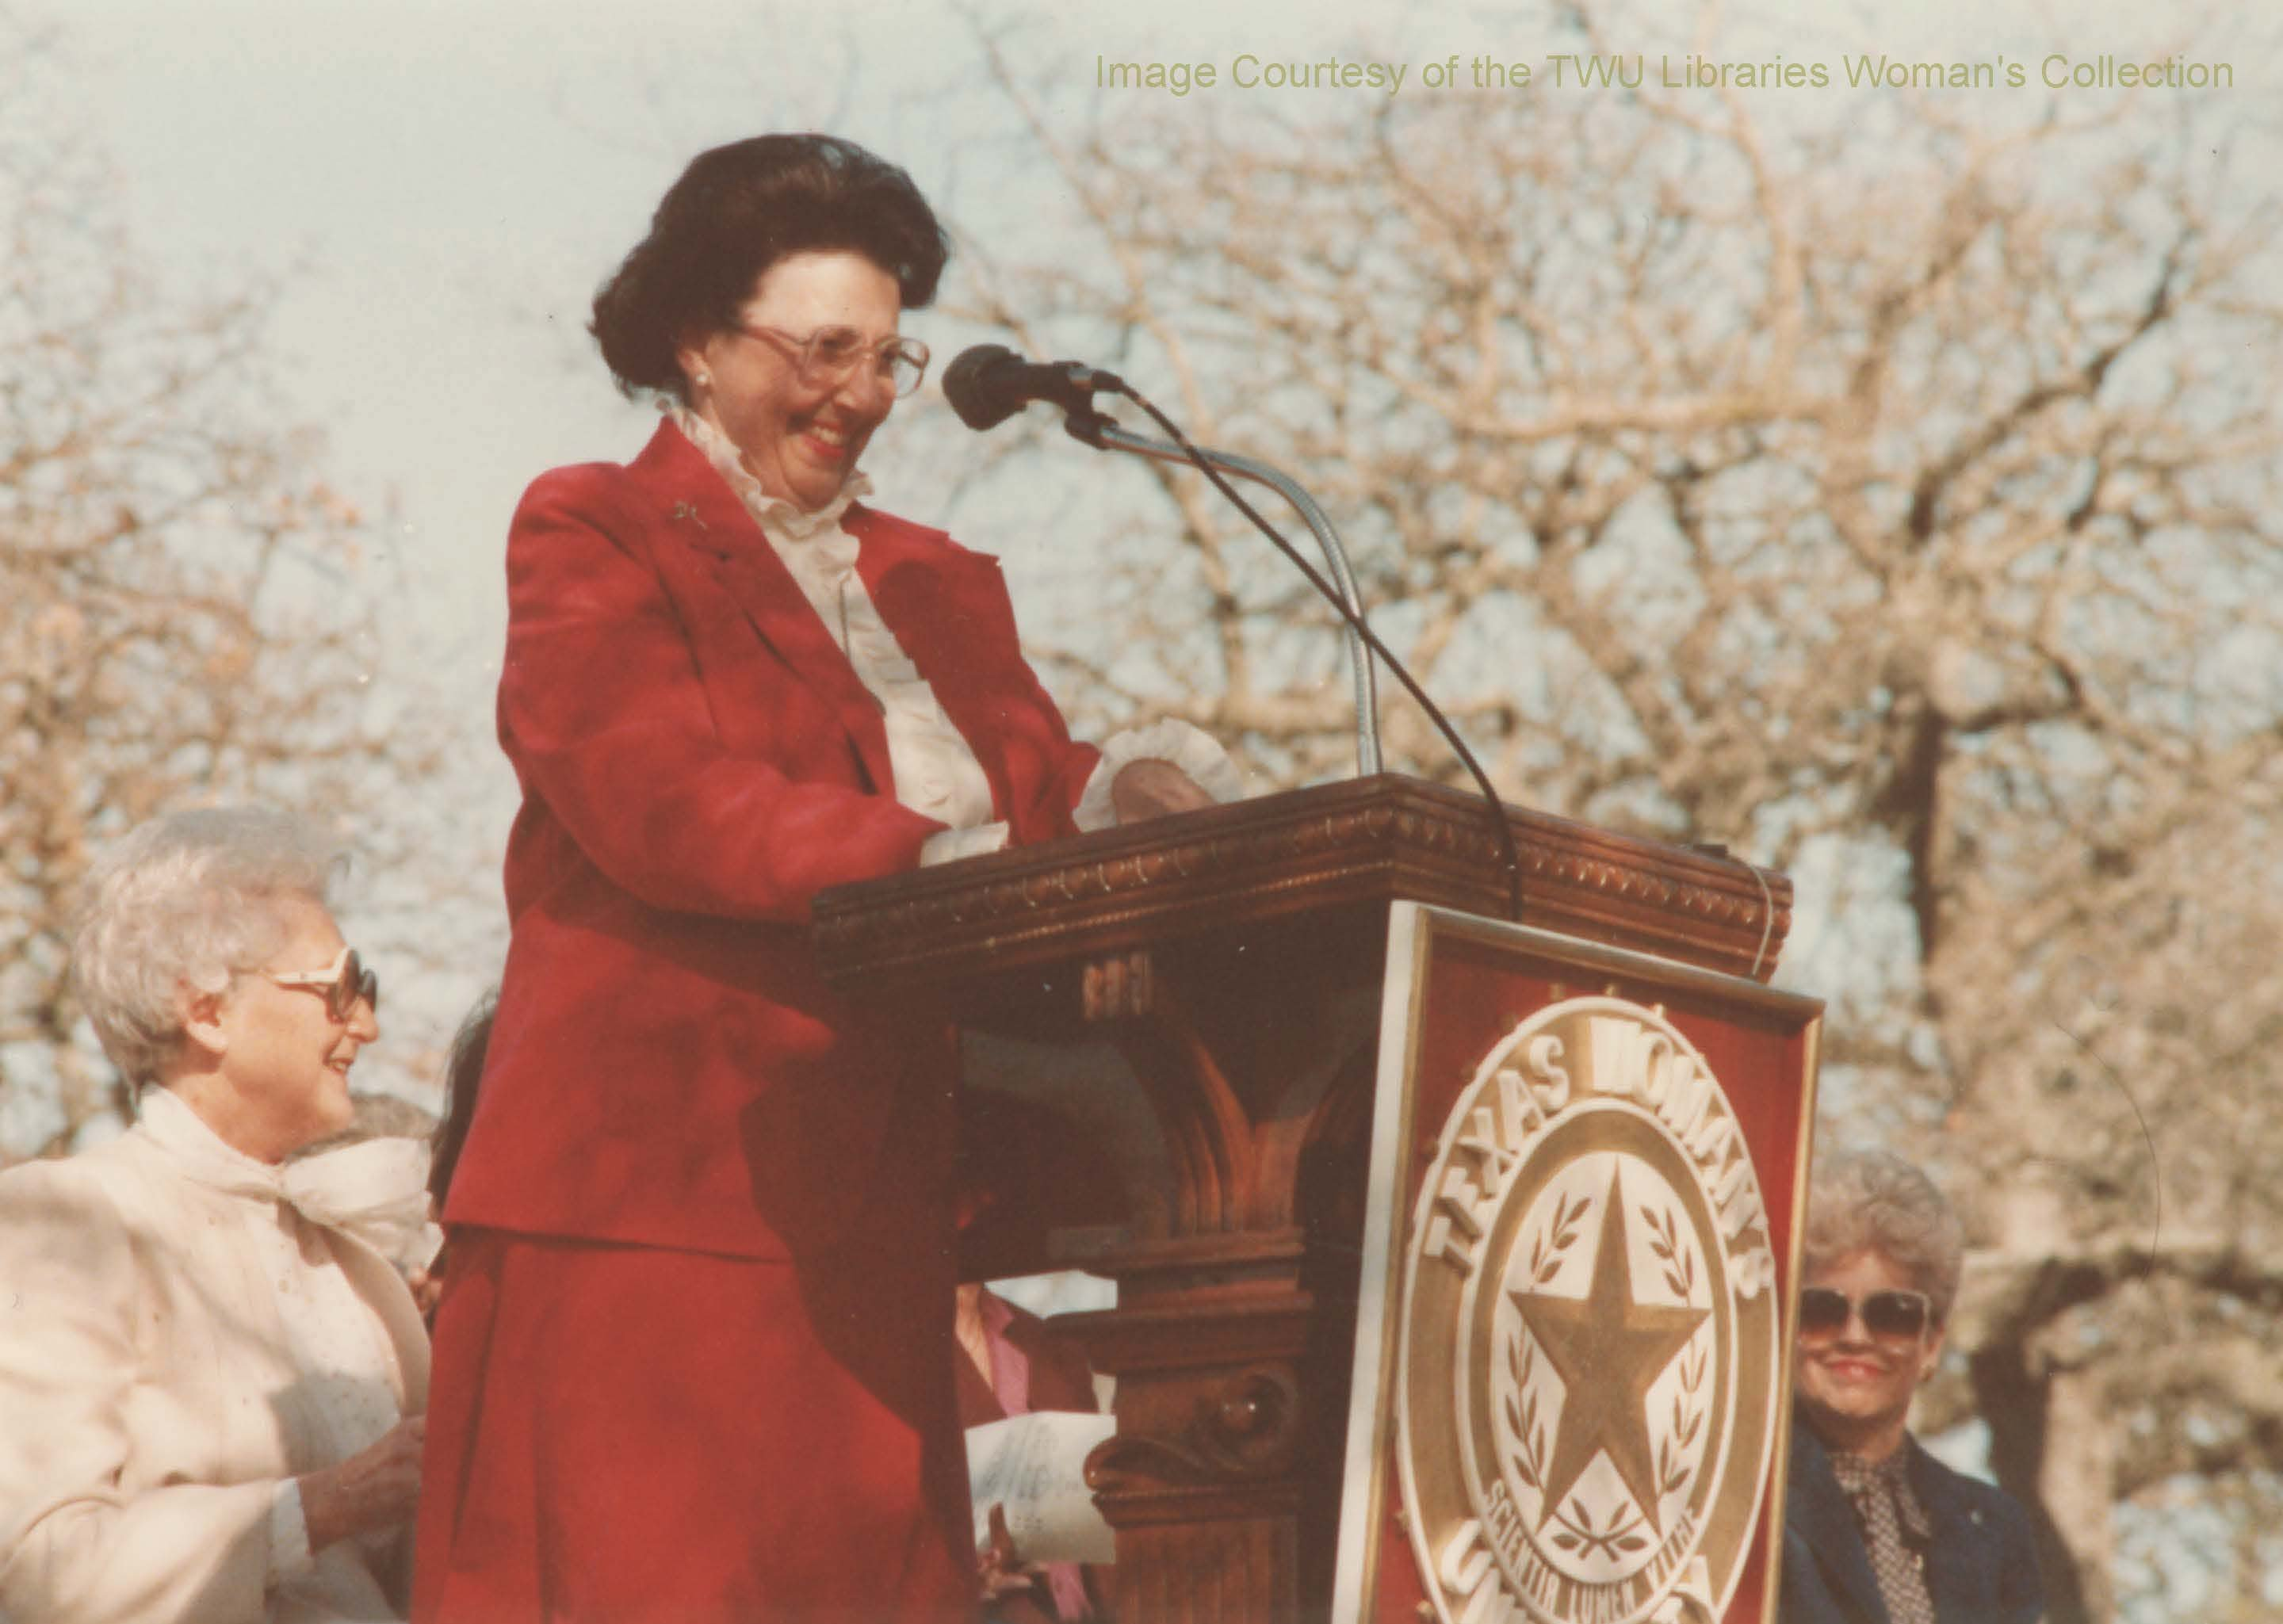 Dr. Mary Evelyn Blagg-Huey, Distinguished Alumna and first female president of TWU speaking at the library groundbreaking ceremony on February 16, 1984. (Photo: 1984, Courtesy TWU Woman's Collection)